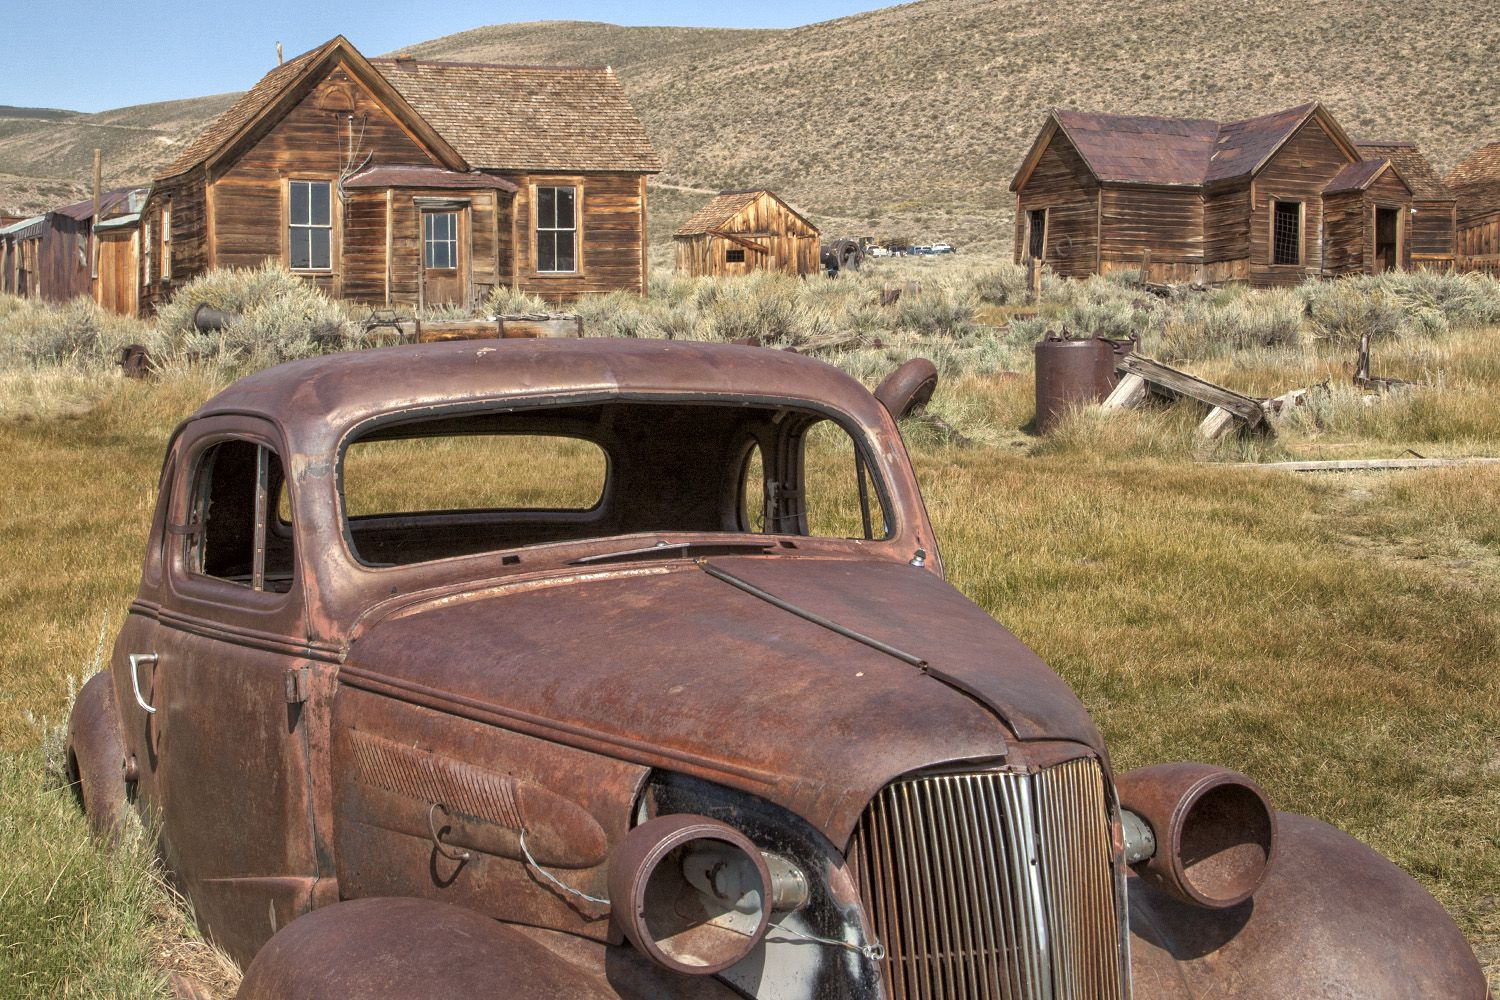 California's 8 Best Ghost Towns to Visit